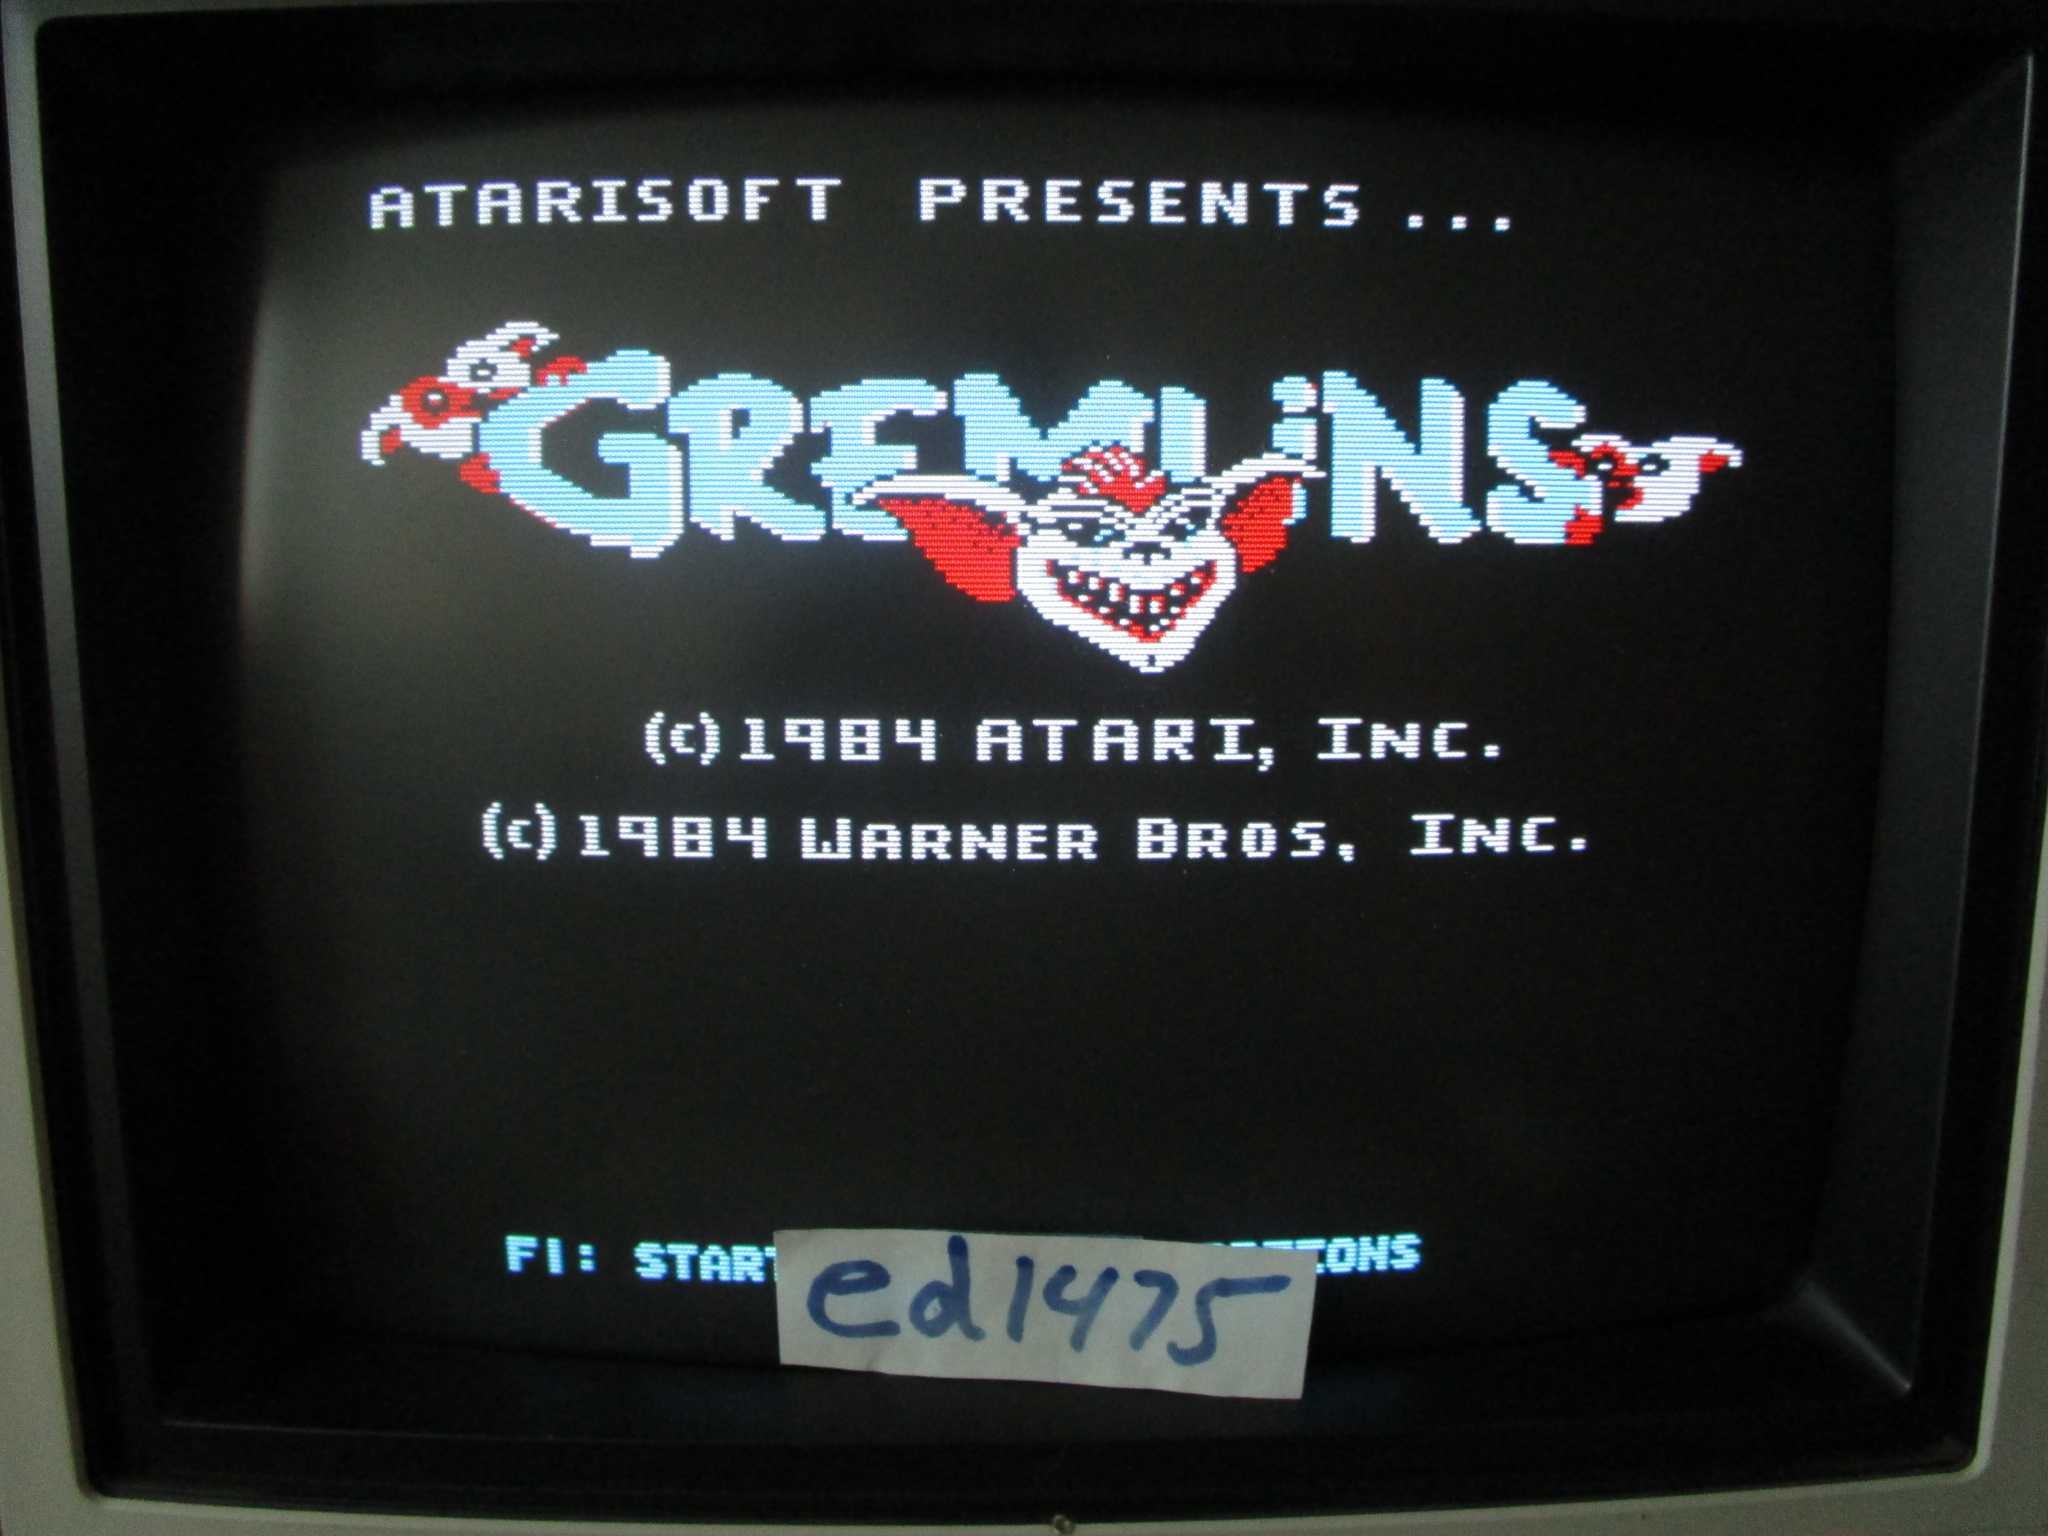 ed1475: Gremlins (PC) 5,317 points on 2015-02-02 20:19:48